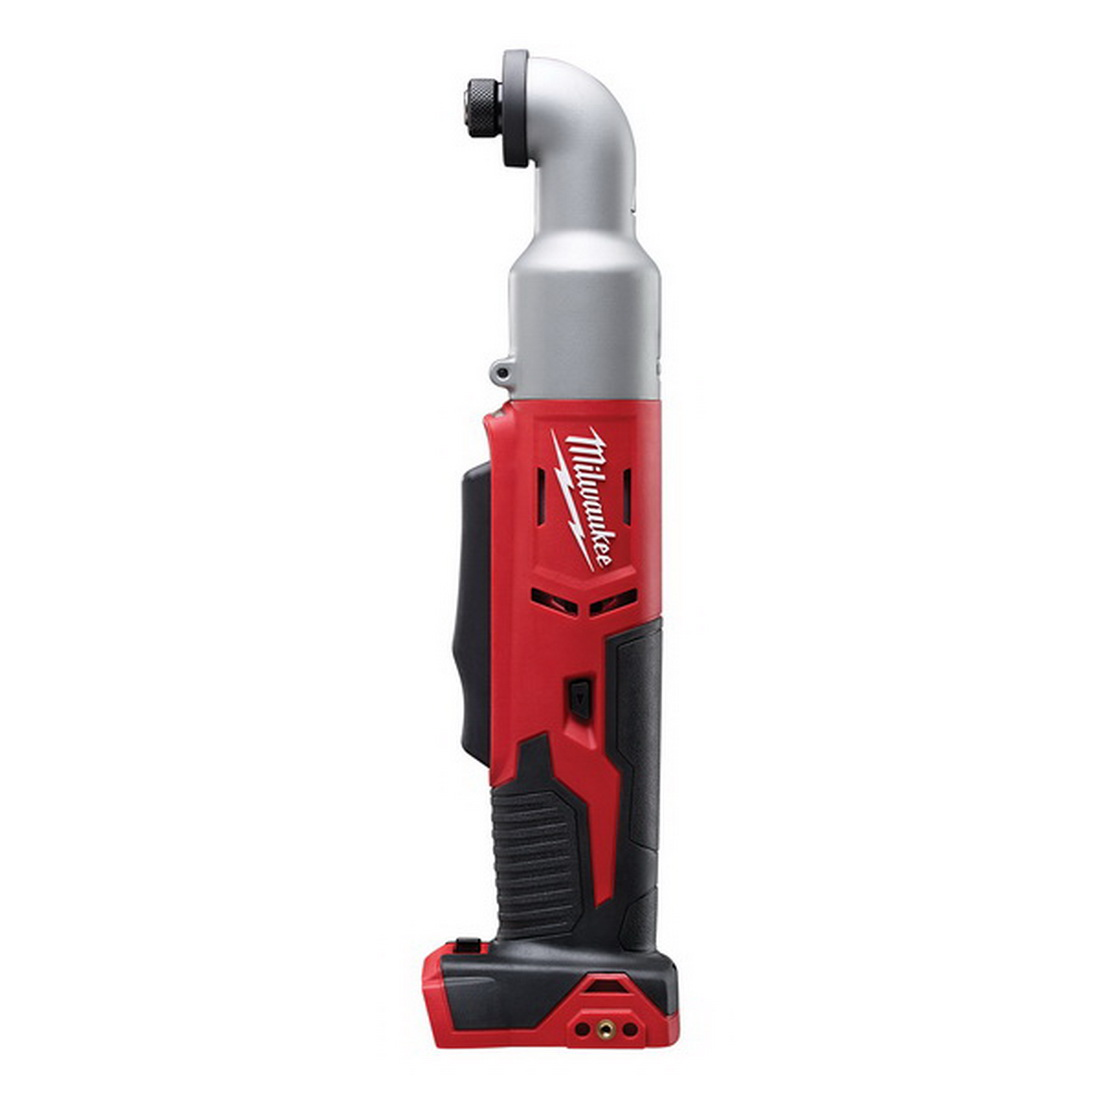 M18 Compact Right Angle Impact Driver 1/4 inch